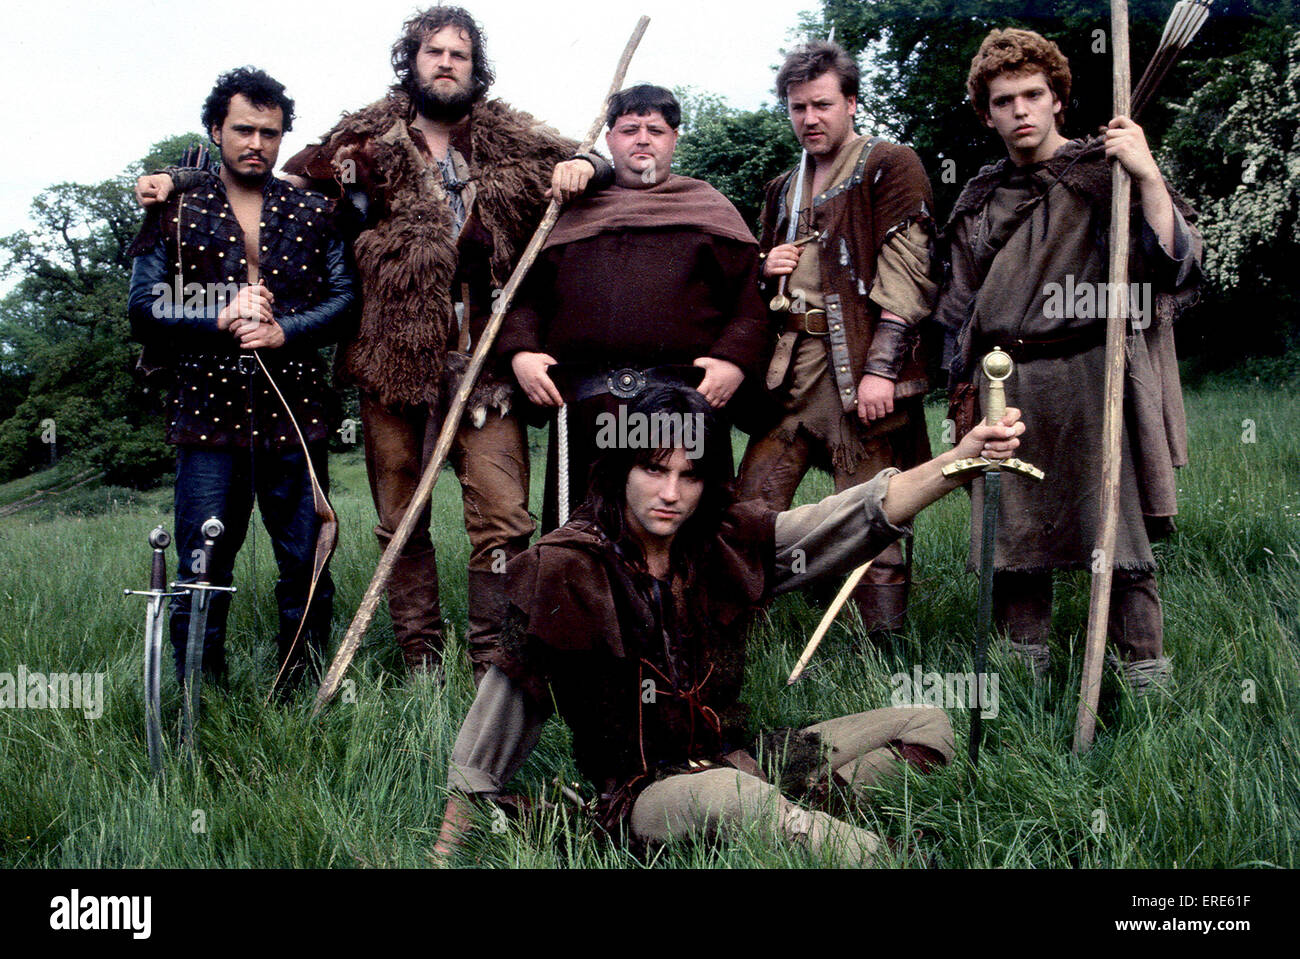 the analysis of the merry men Sevenscore merry men that roamed with him through the greenwood shades right merrily they dwelled within the depths of sherwood forest, suffering neither care nor want, but passing the time in merry games of archery or bouts of.